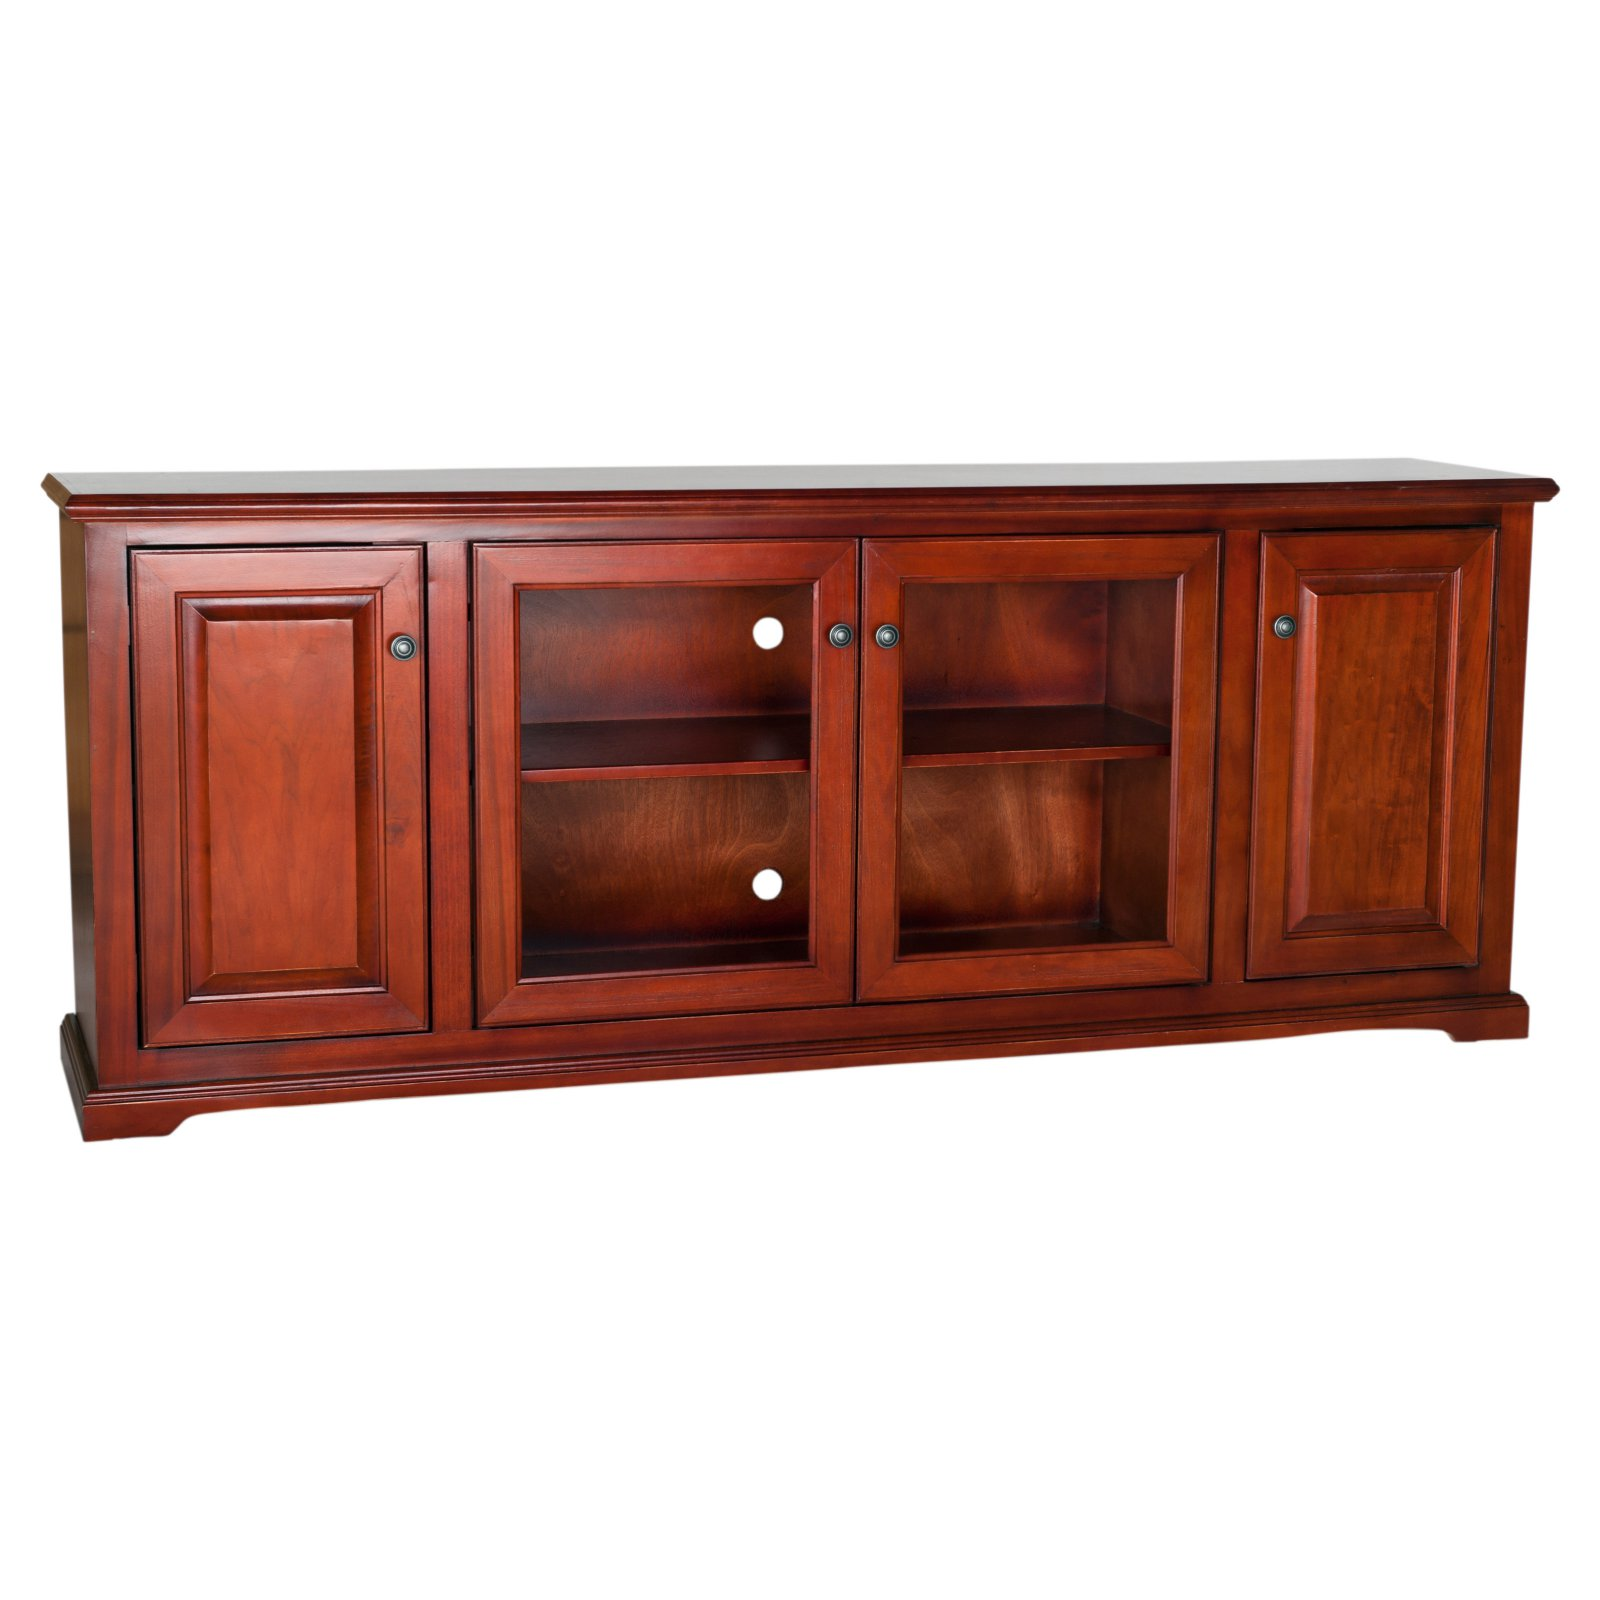 Eagle Furniture Savannah 80 in. Thin Entertainment Center